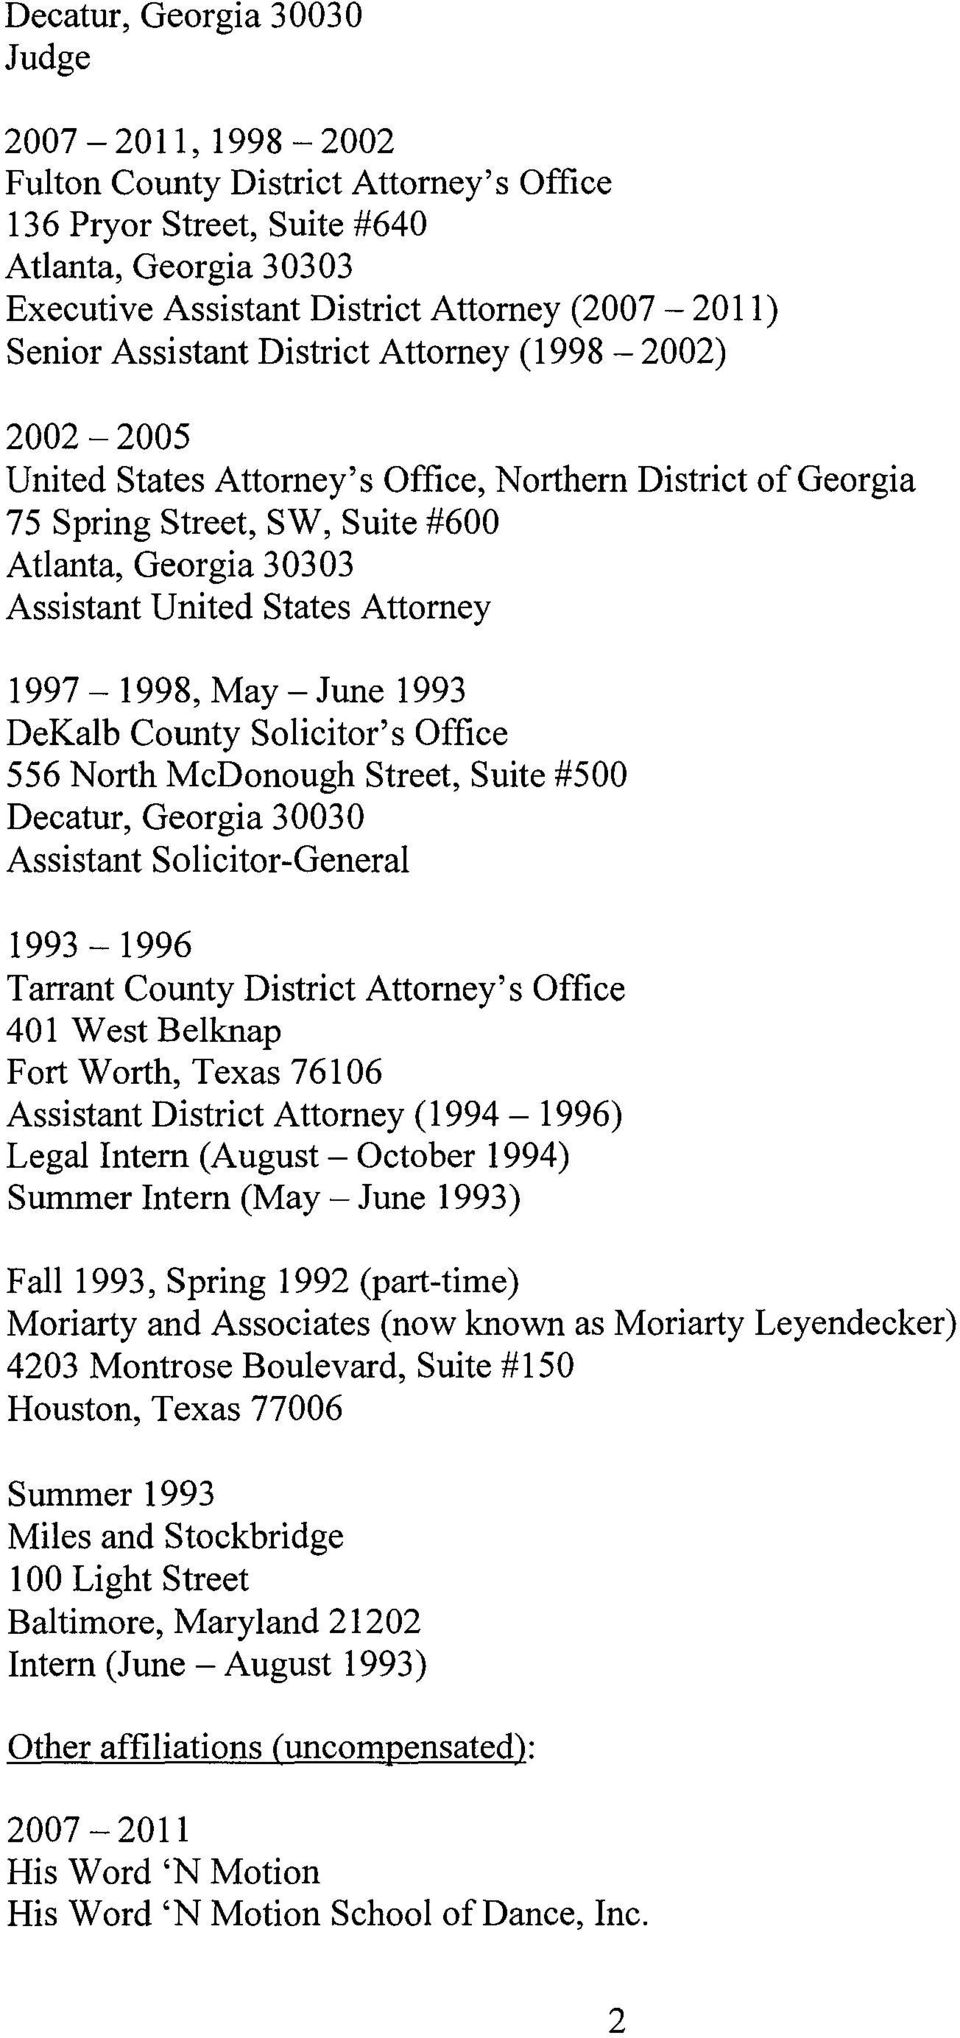 Attorney 1997-1998, May- June 1993 DeKalb County Solicitor's Office 556 North McDonough Street, Suite #500 Decatur, Georgia 30030 Assistant Solicitor-General 1993-1996 Tarrant County District